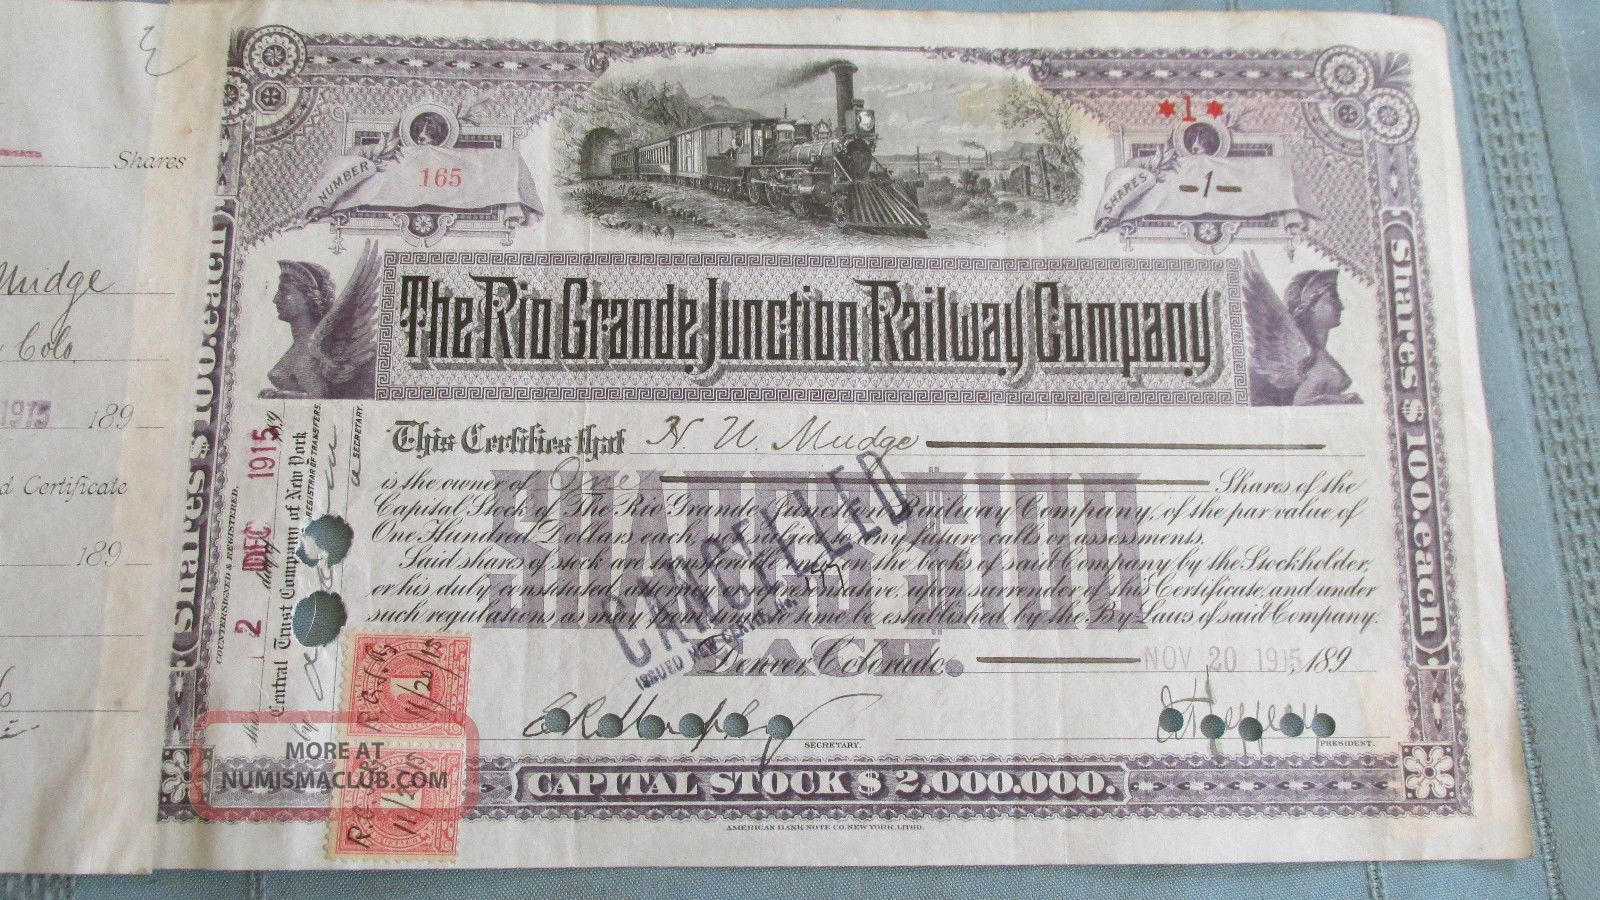 Rio Grande Junction Railway Company Stock Certificate - Issued & Signed 1915 - Colo. Transportation photo